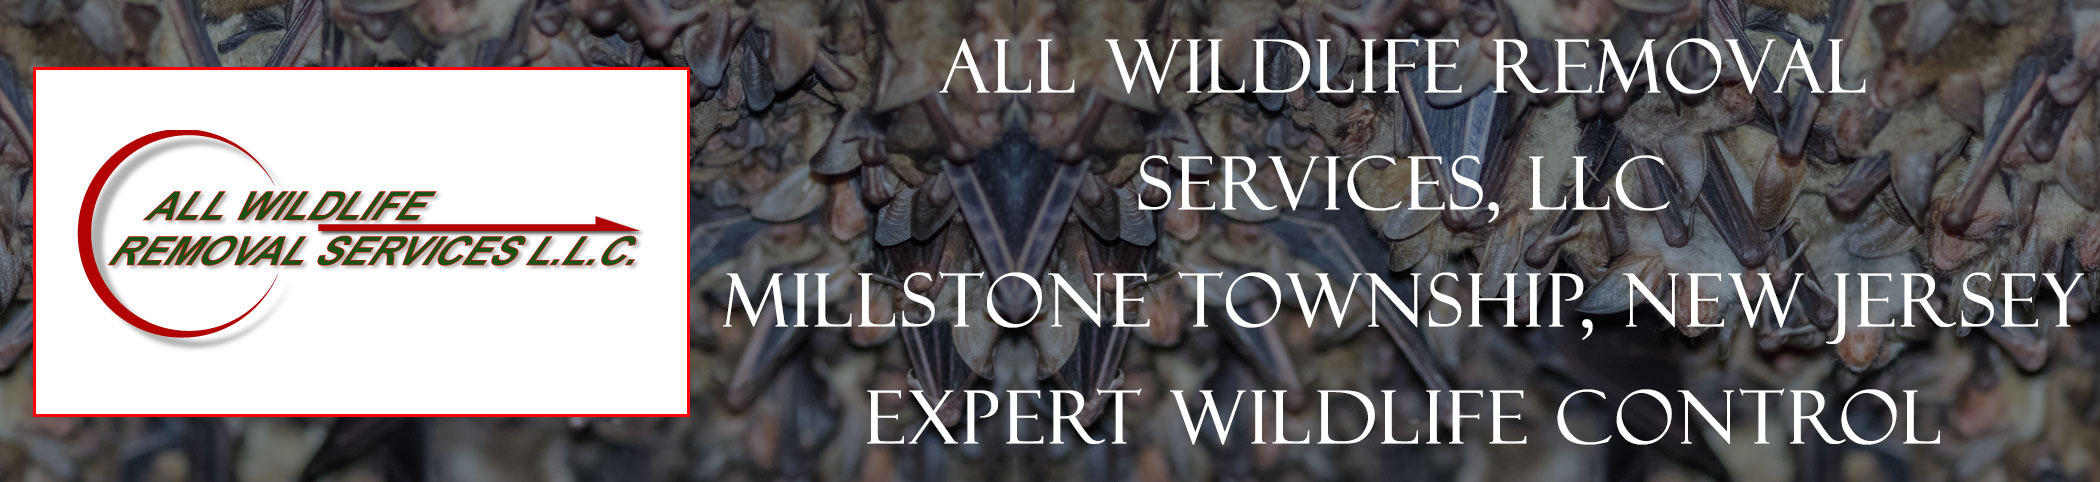 all-wildlife-removal-services-Millstone Township-new-jersey-header